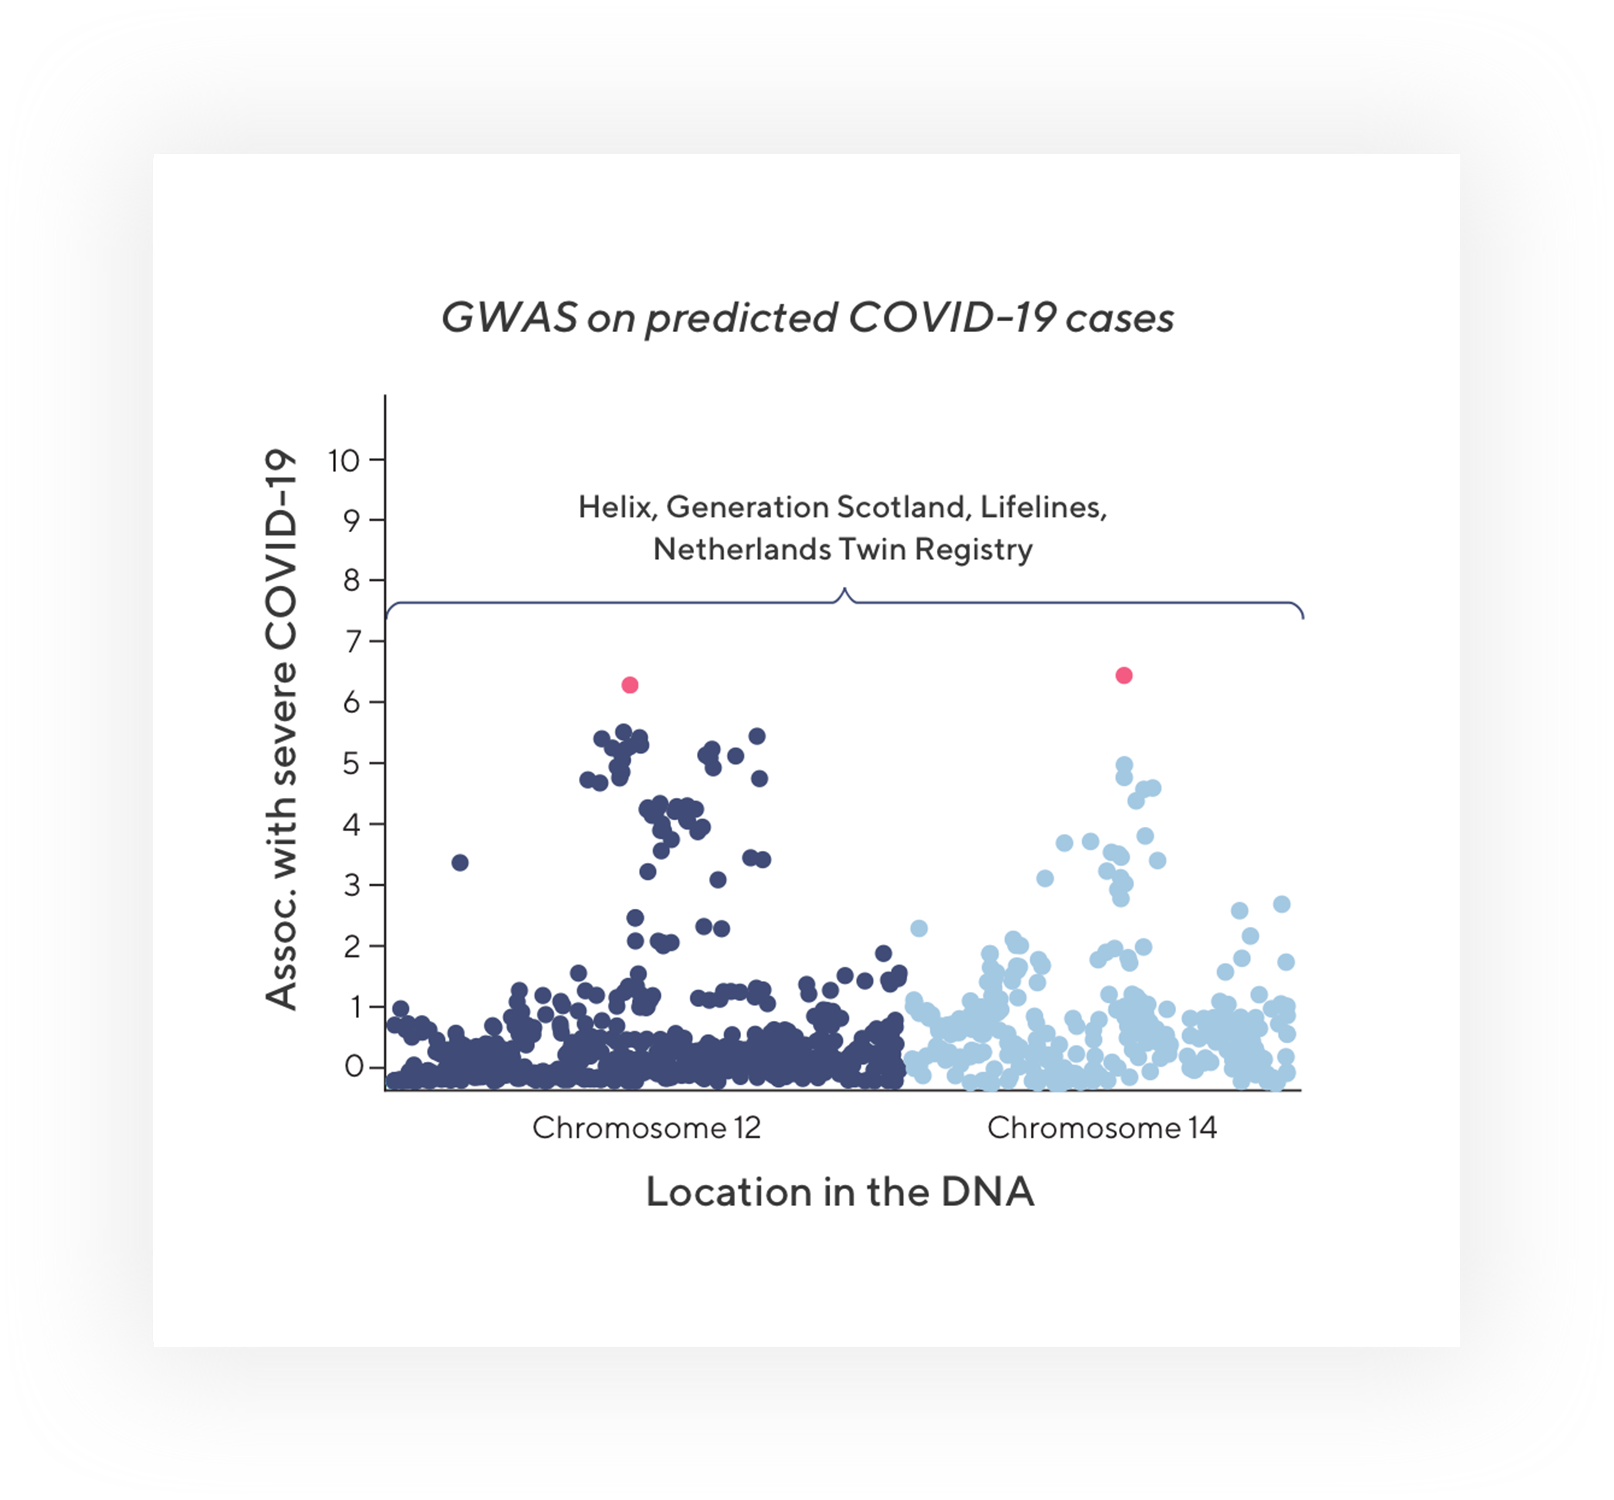 Manhattan plot showing two locations in DNA that trend towards significant associations with COVID-19